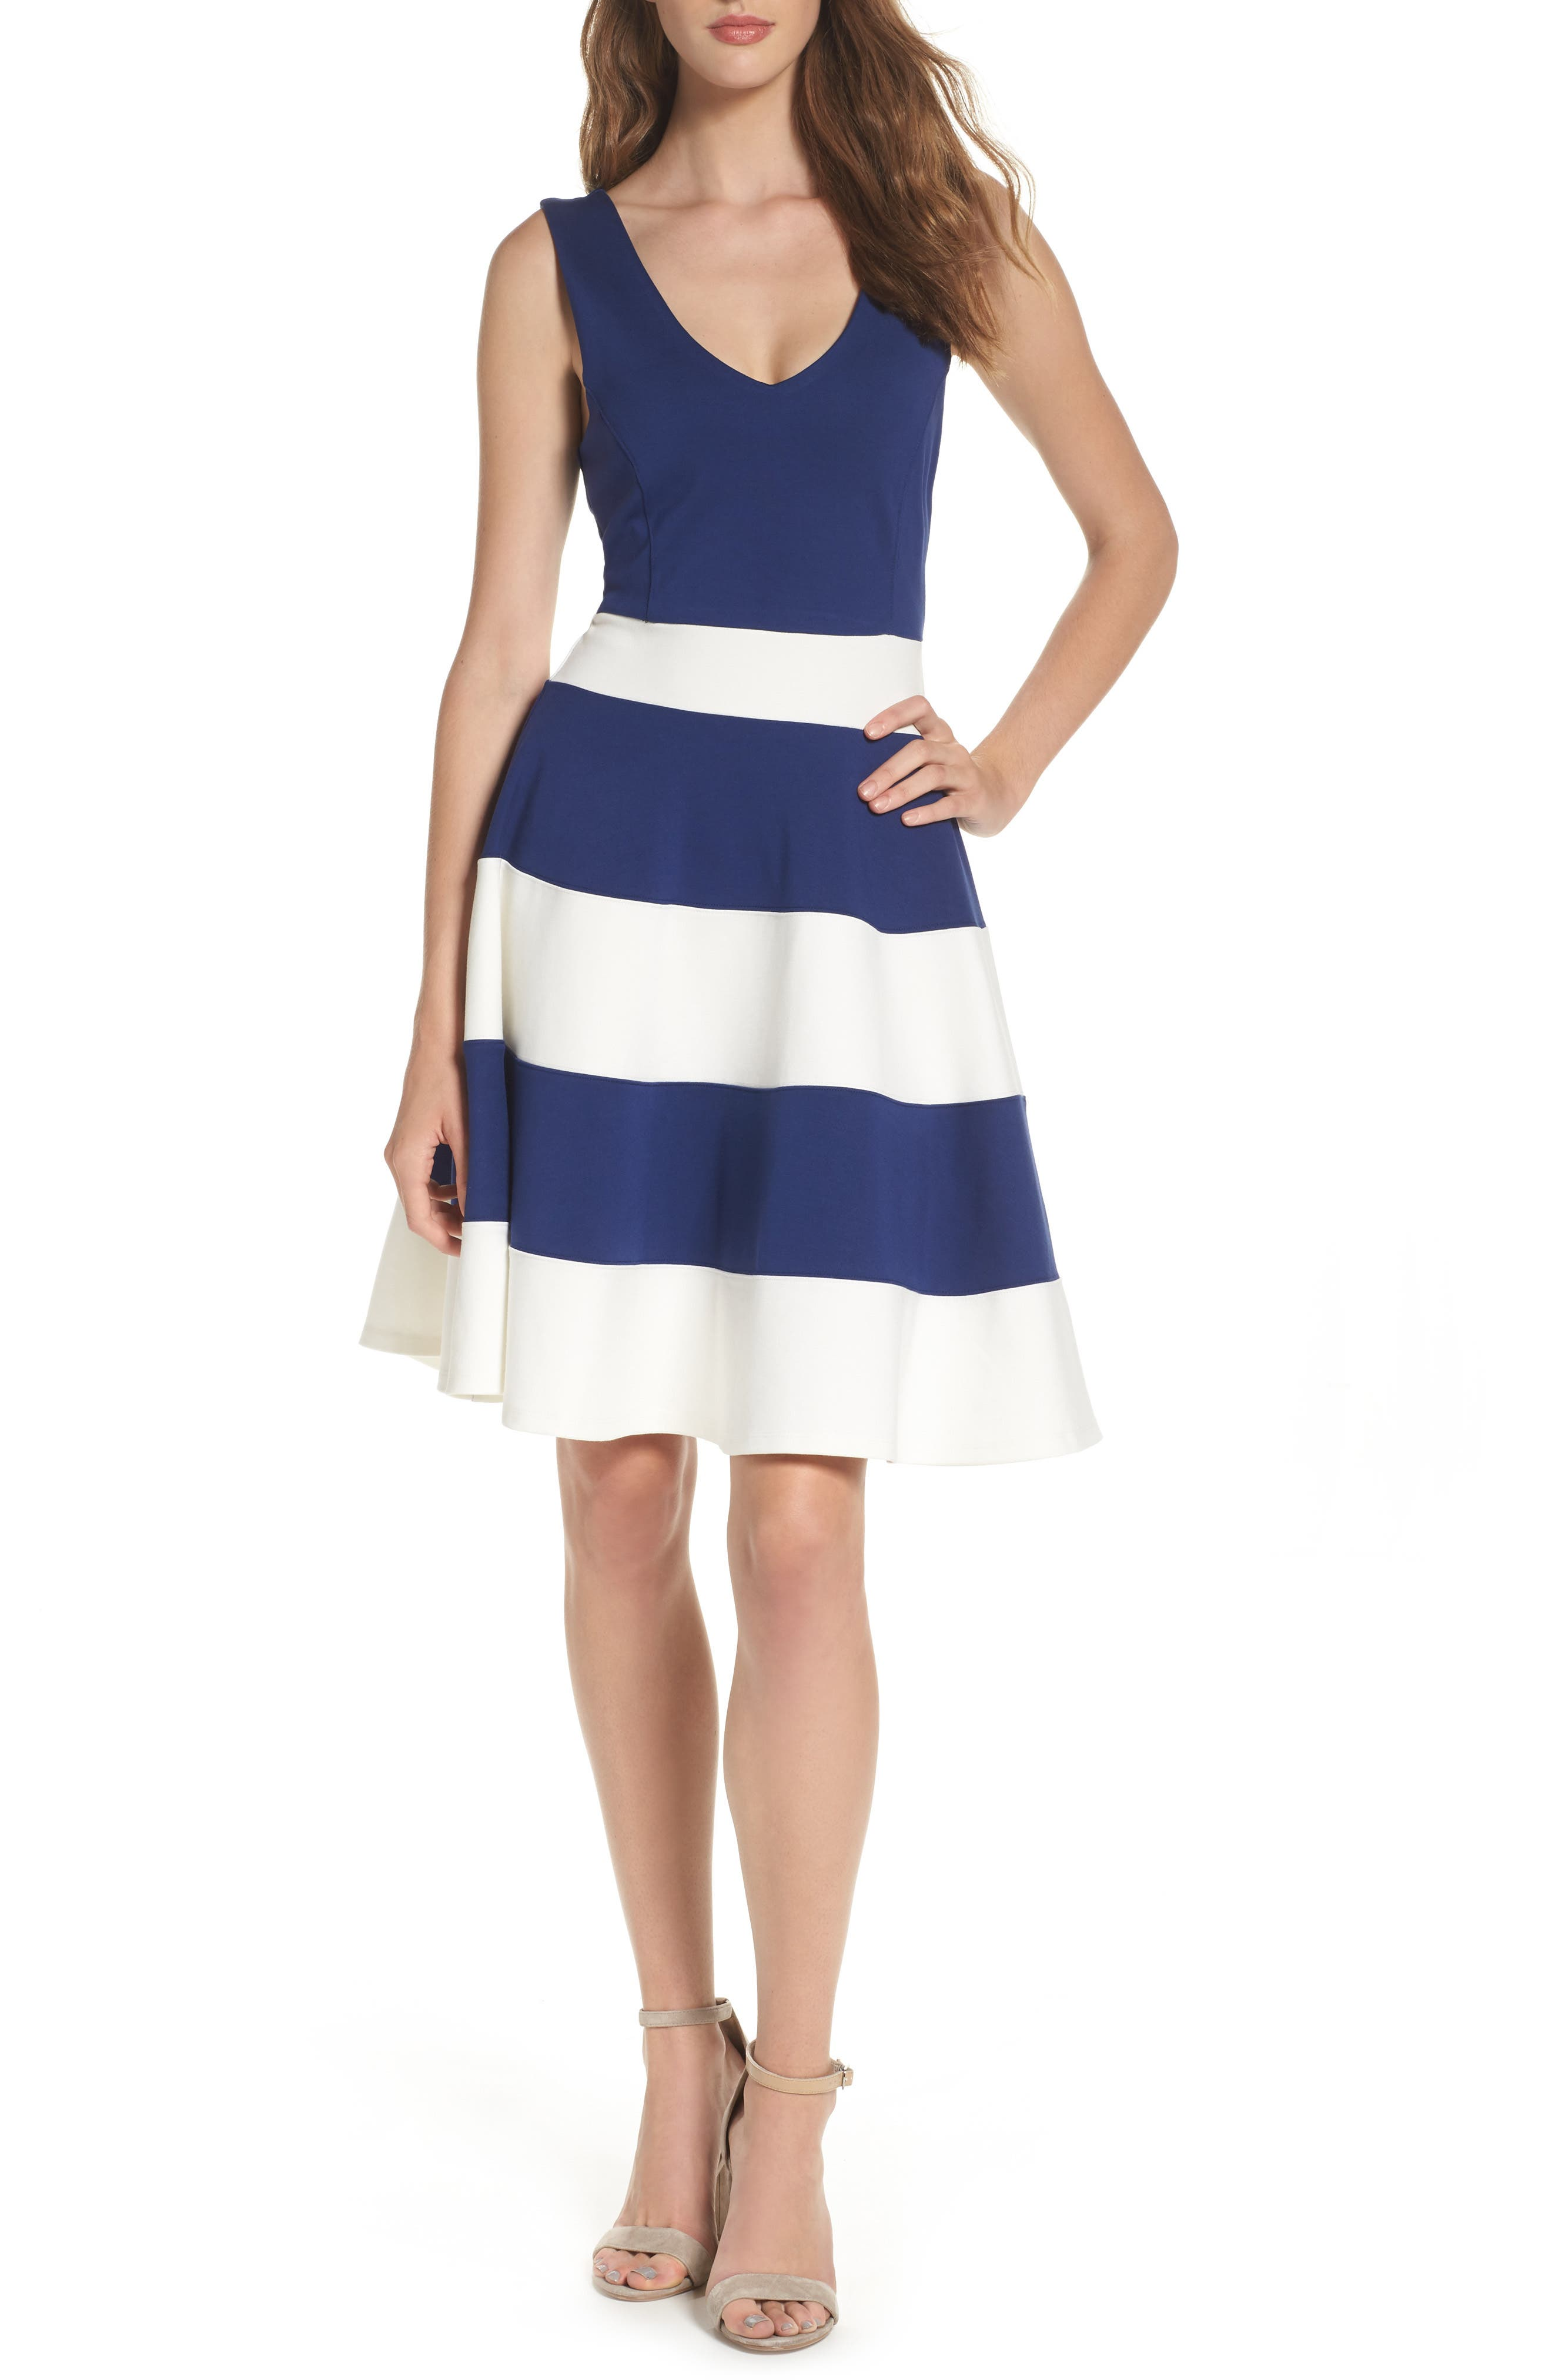 Joice Sleeveless Fit & Flare Dress,                             Main thumbnail 1, color,                             Navy/ White